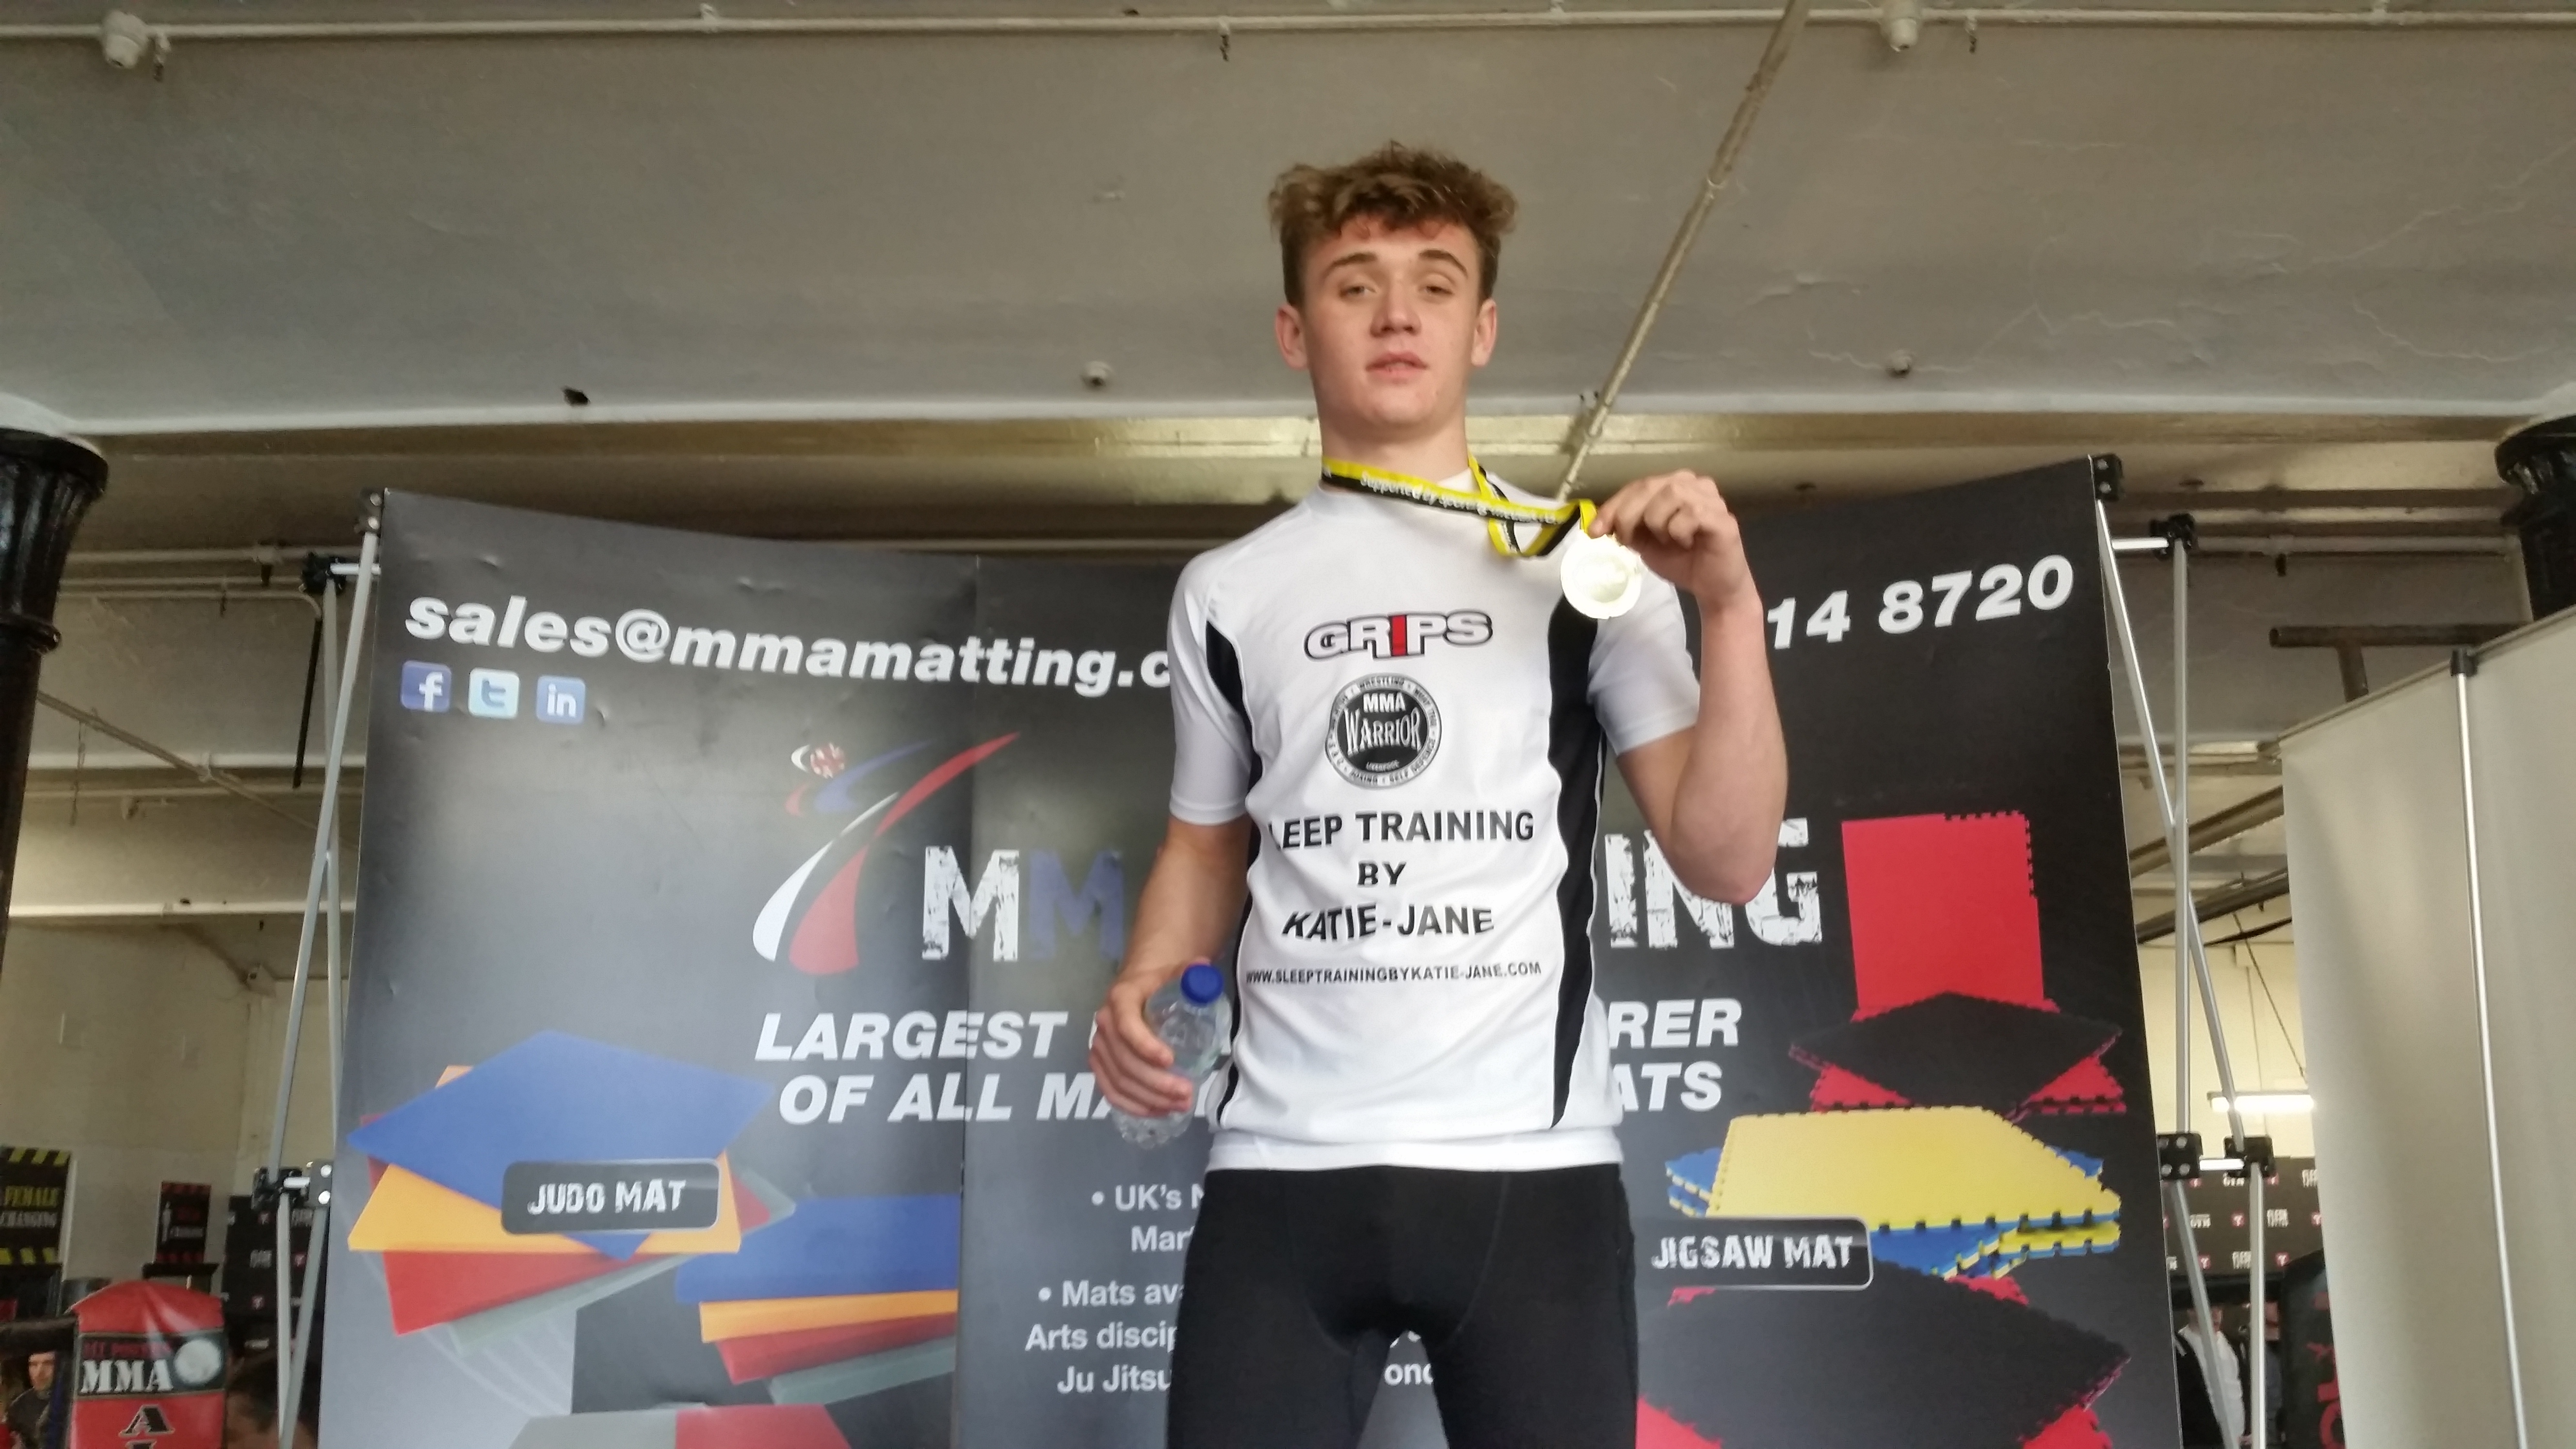 Martial arts fighters take medal haul at Manchester contest